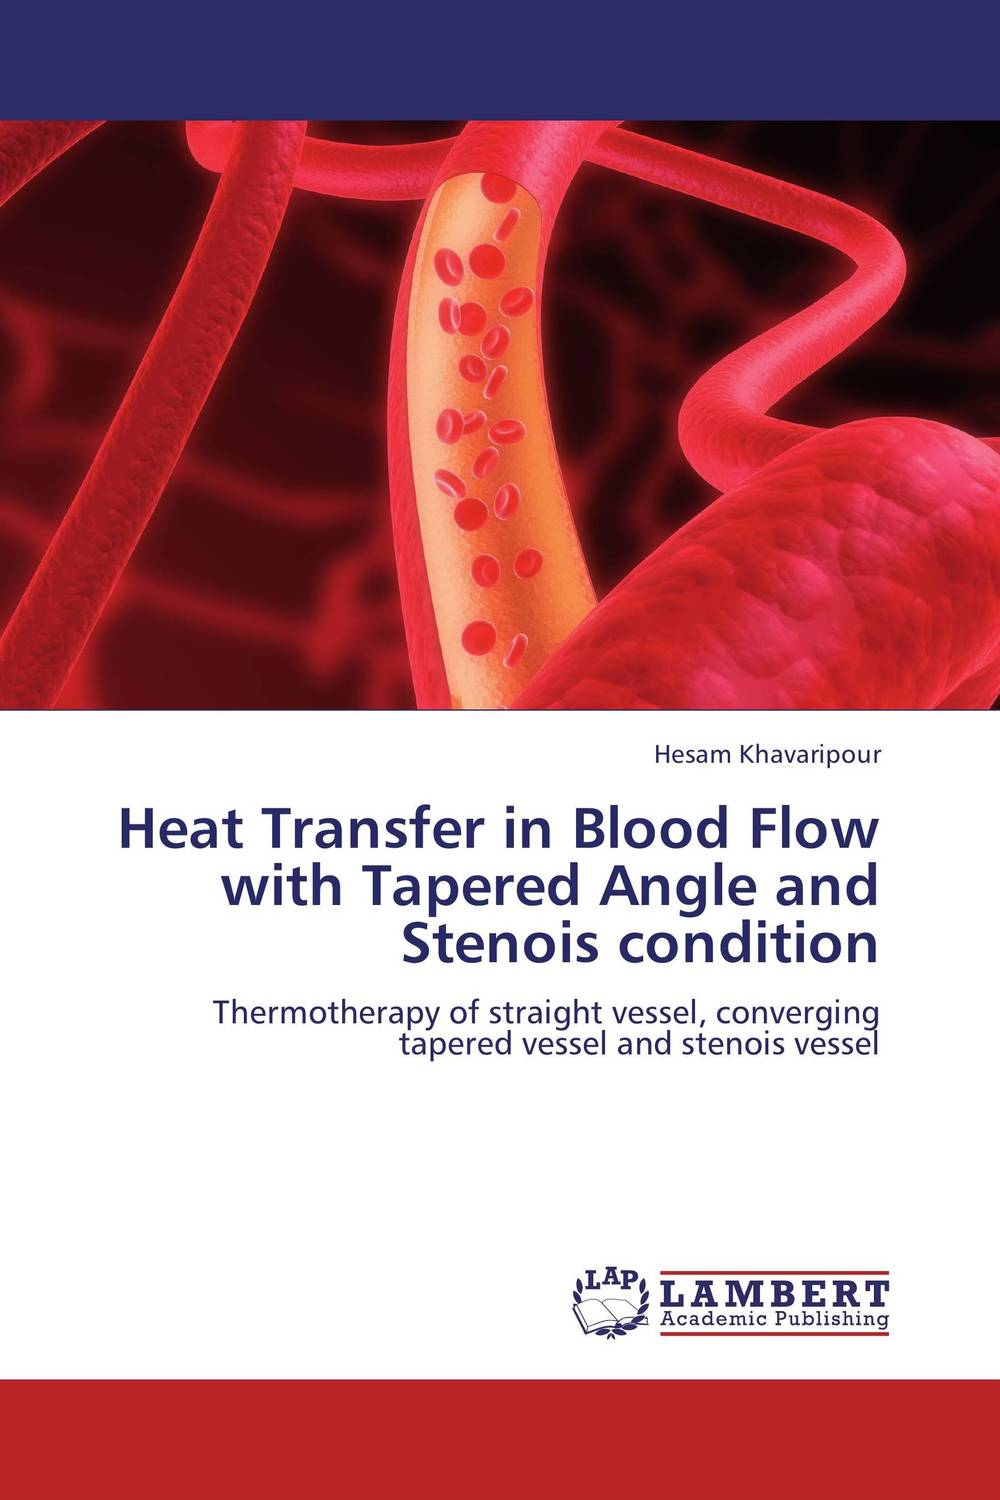 Heat Transfer in Blood Flow with Tapered Angle and Stenois condition johan marigny heat recovery in supermarket refrigeration